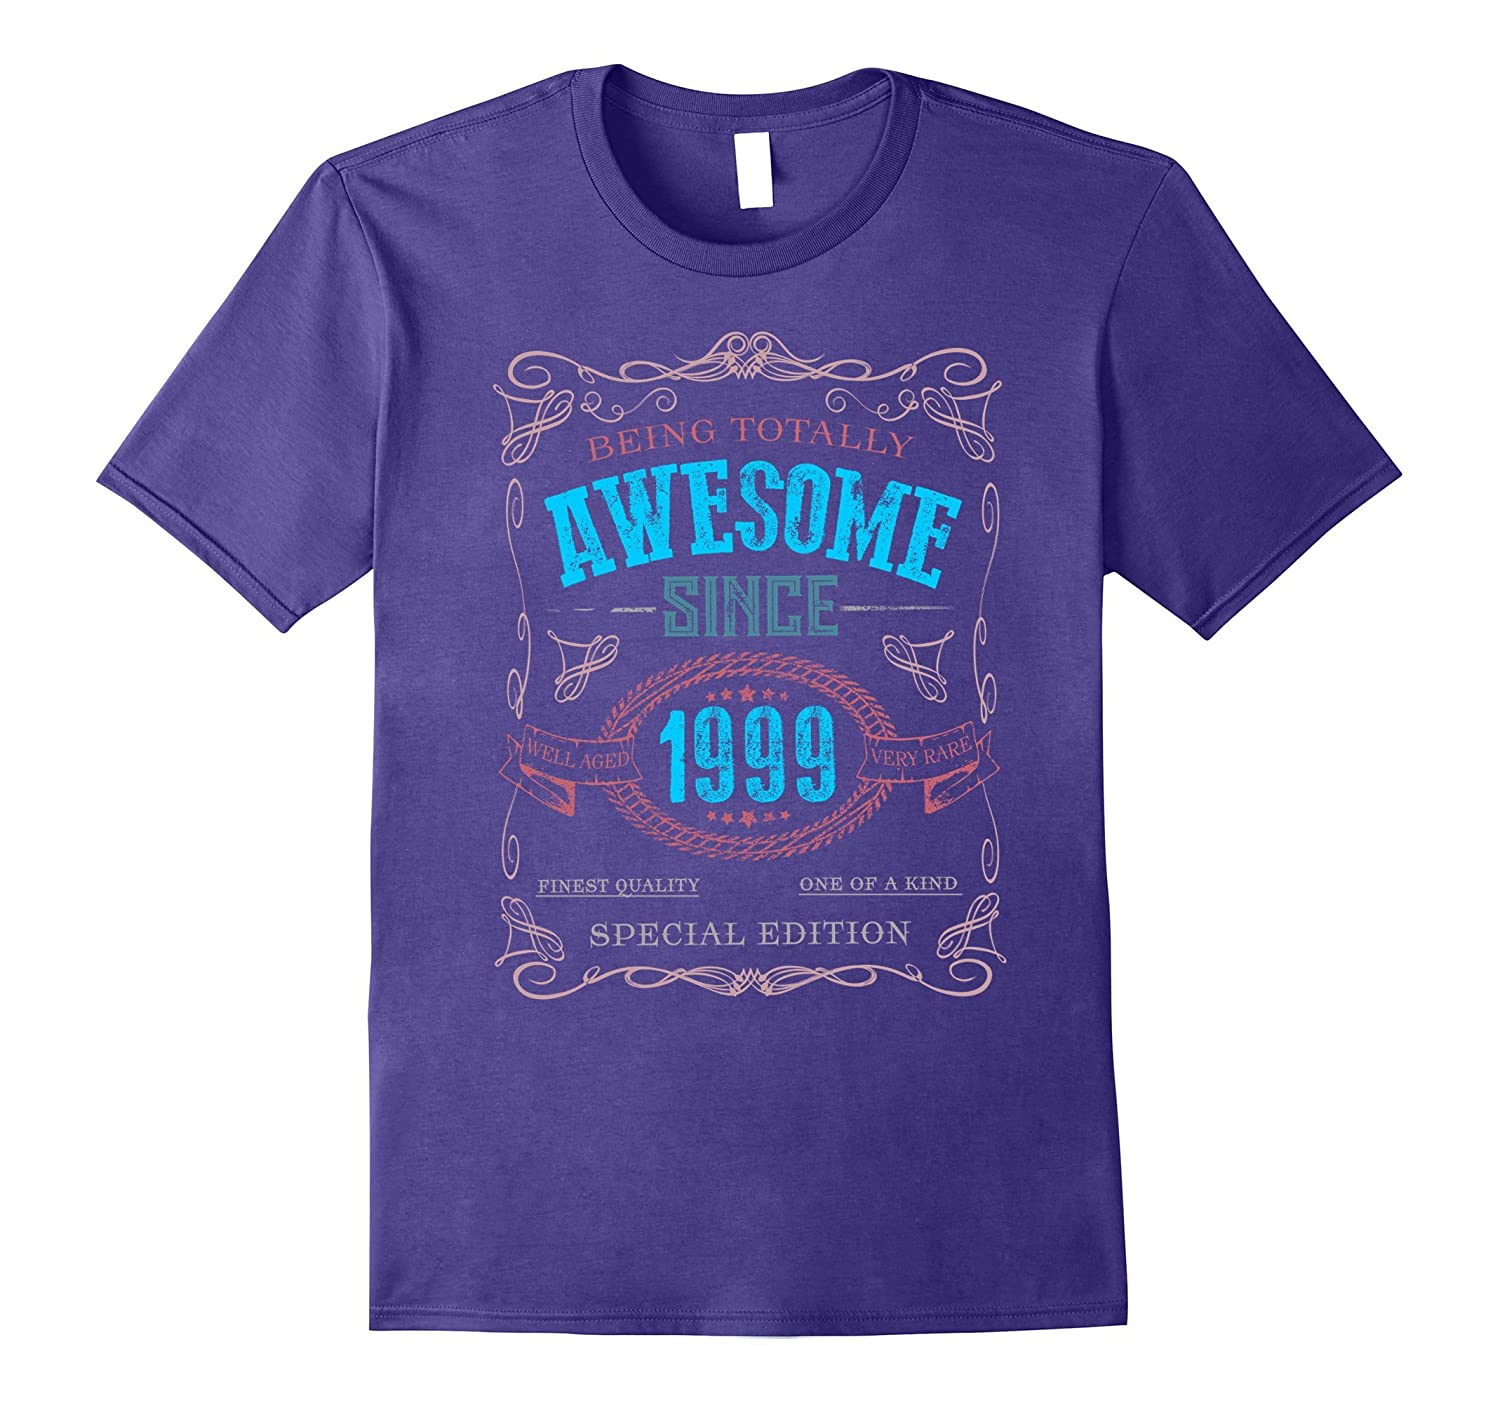 18th Birthday gift shirt Vintage Awesome Since 1999 18 years